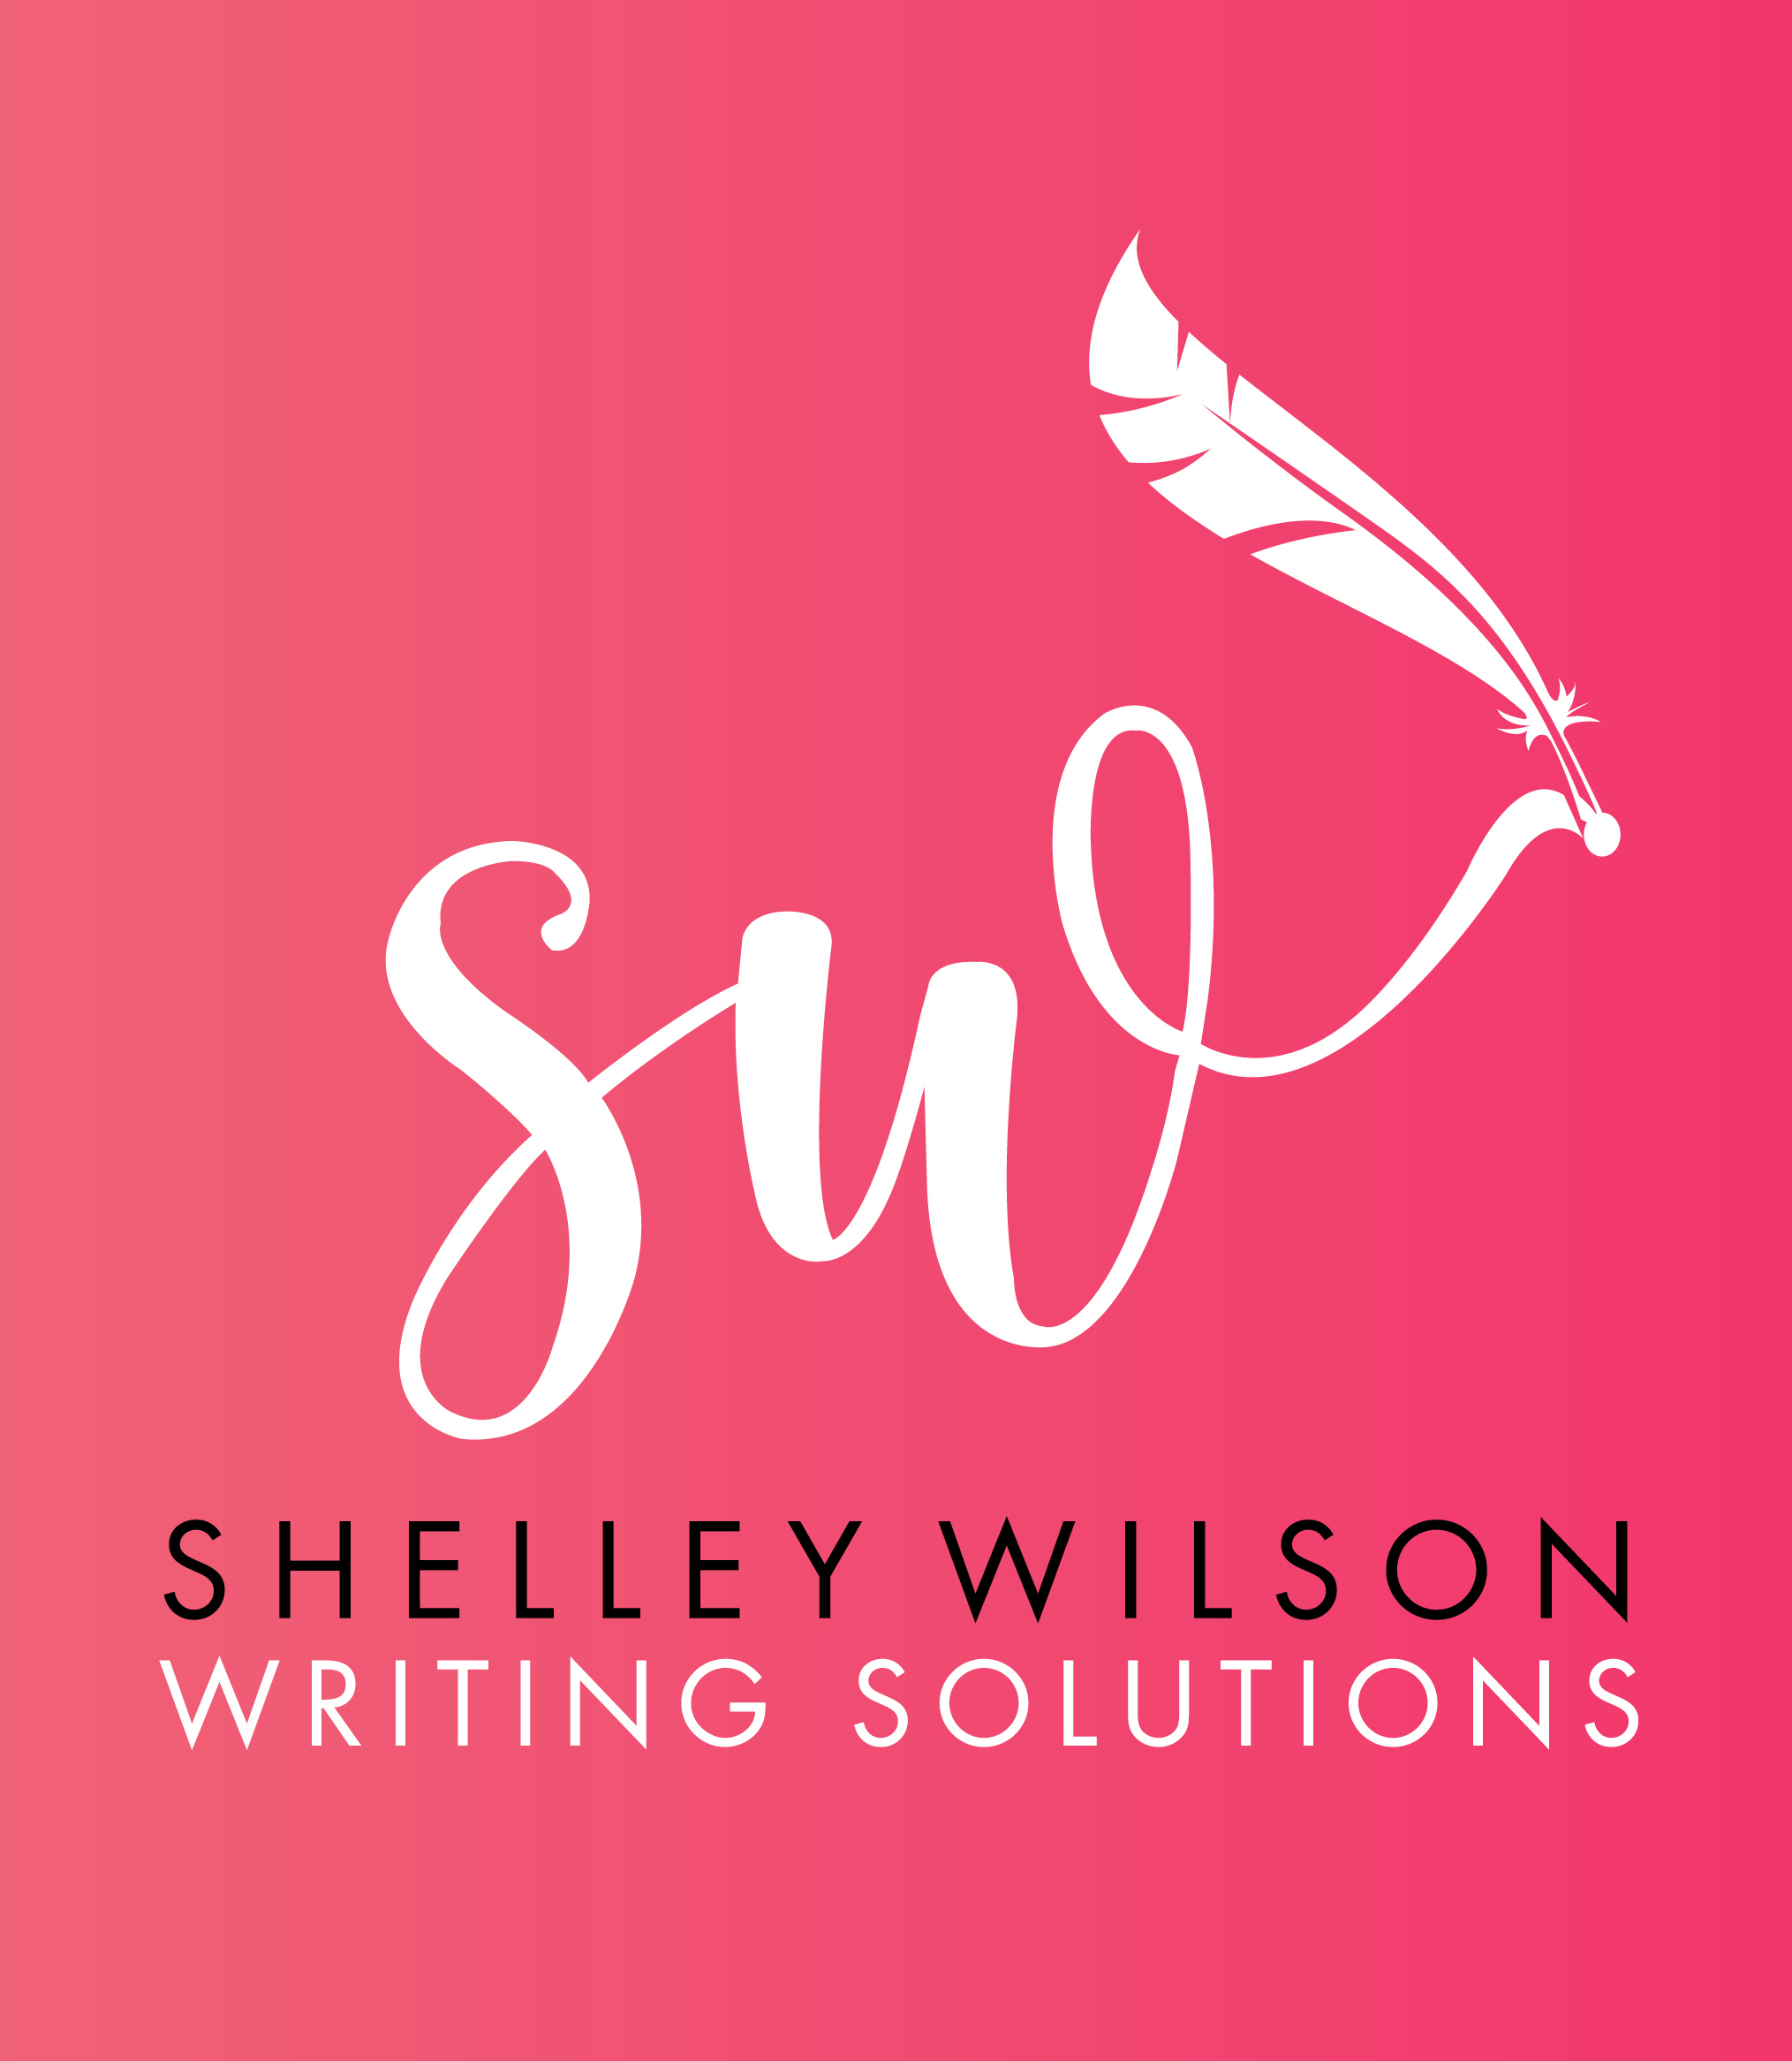 White Shelley Wilson Writing Solutions logo on a hot pink background